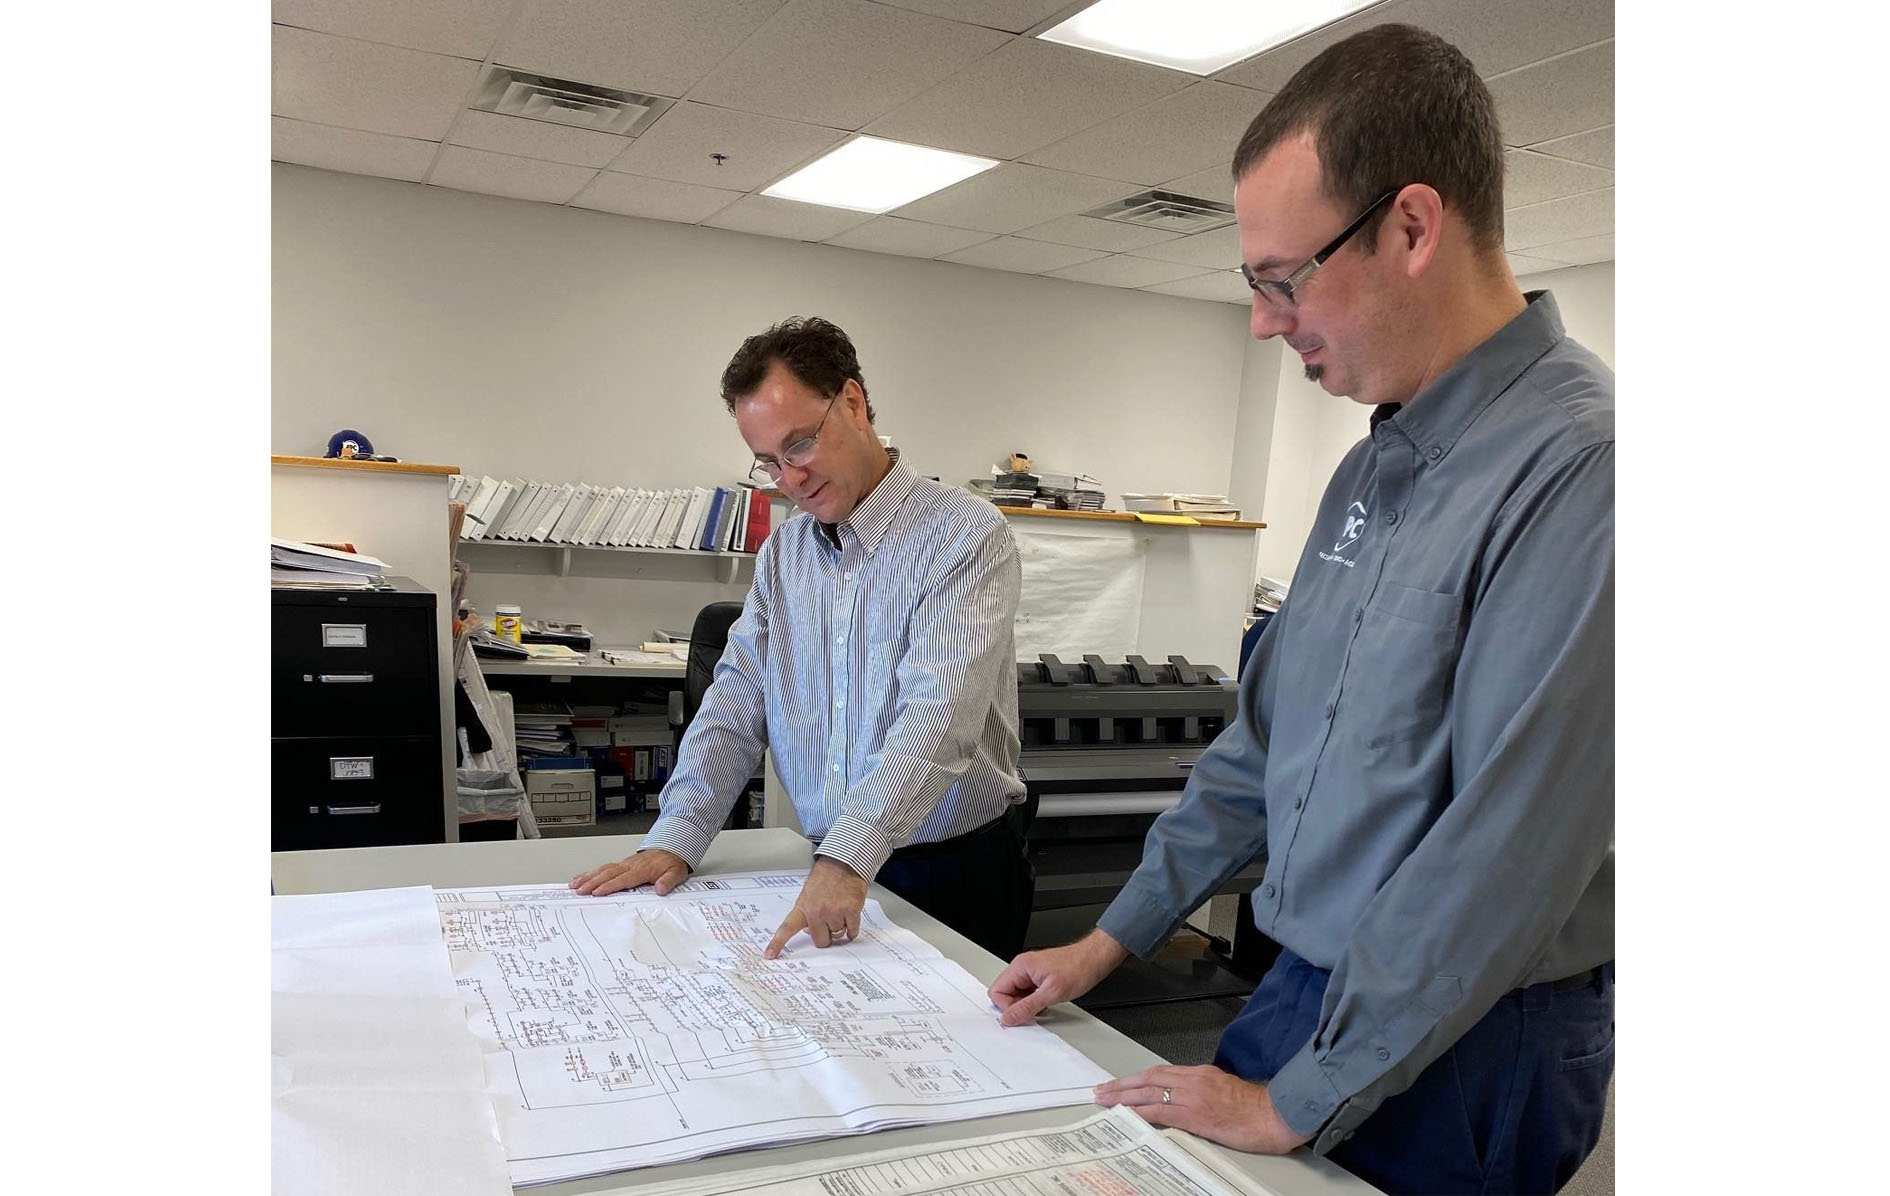 Fire system design specialists at APC